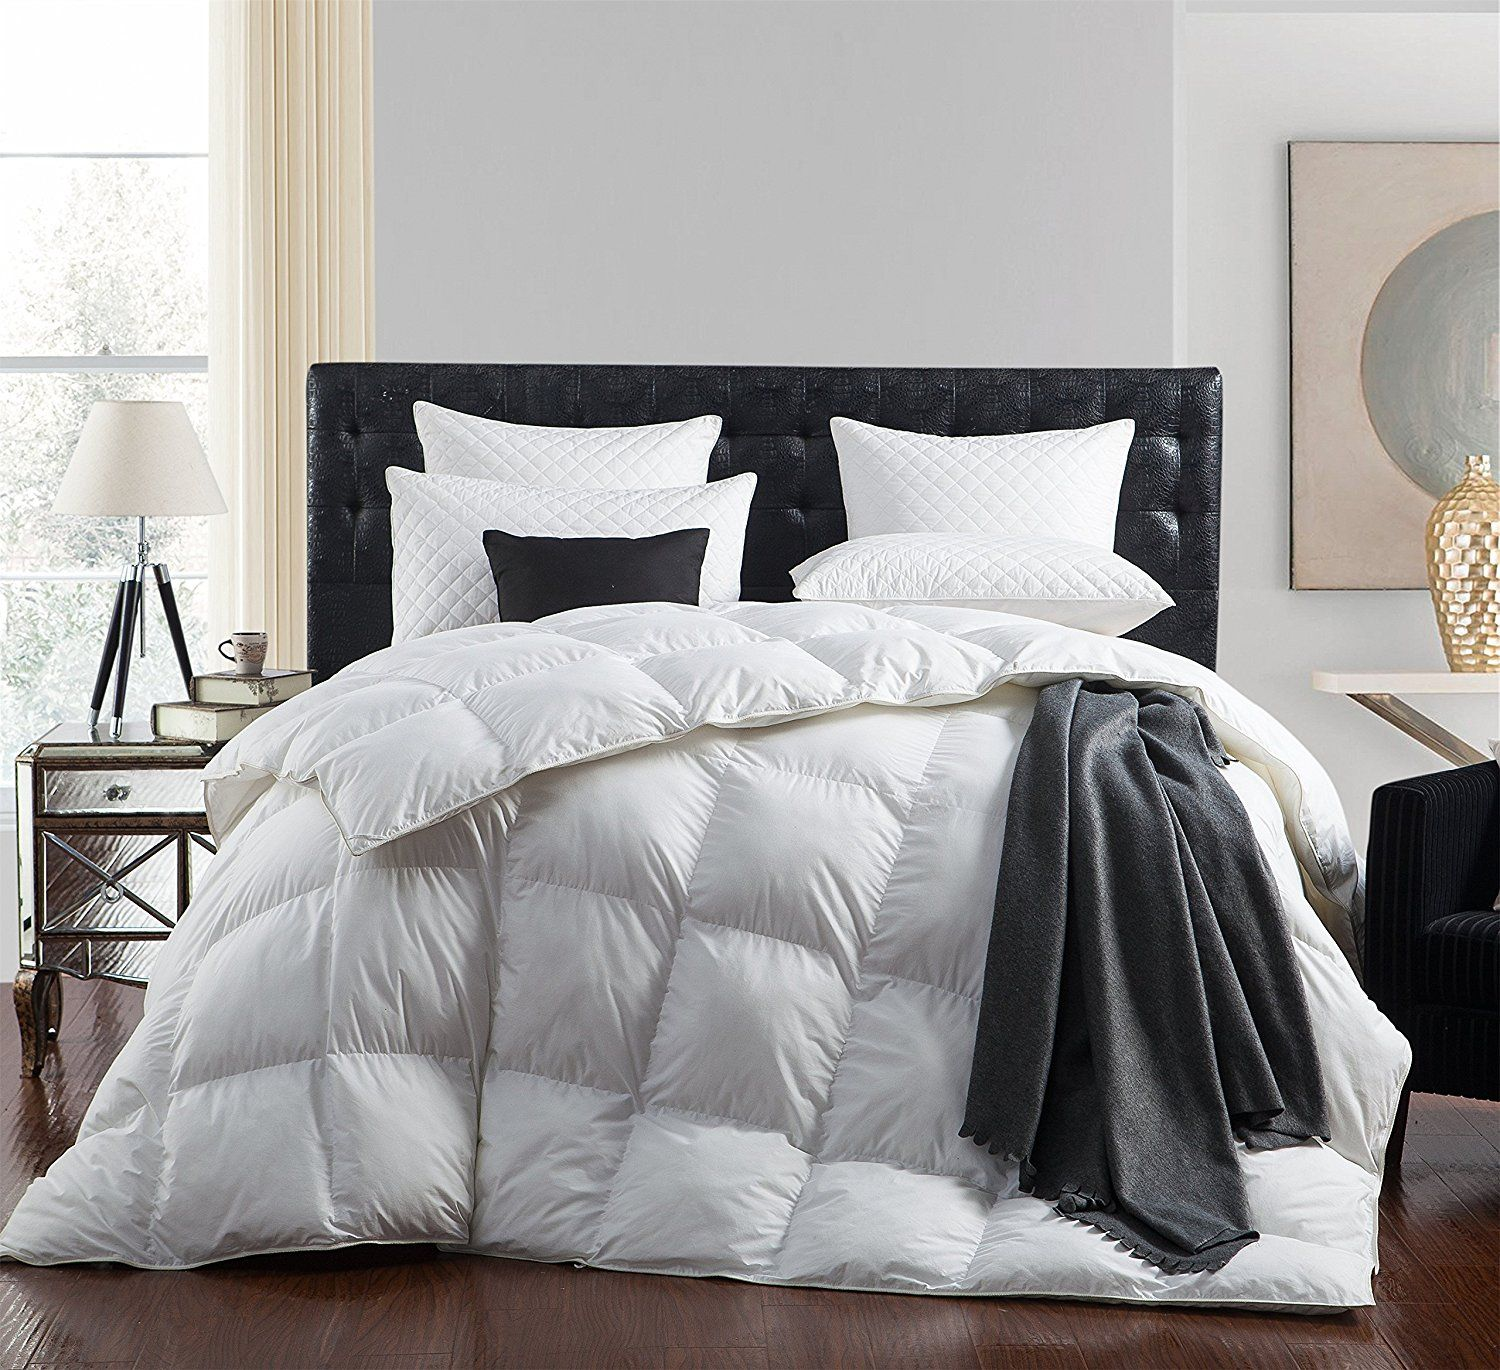 King Comforter Sets California King Bedding Sets Down Comforter